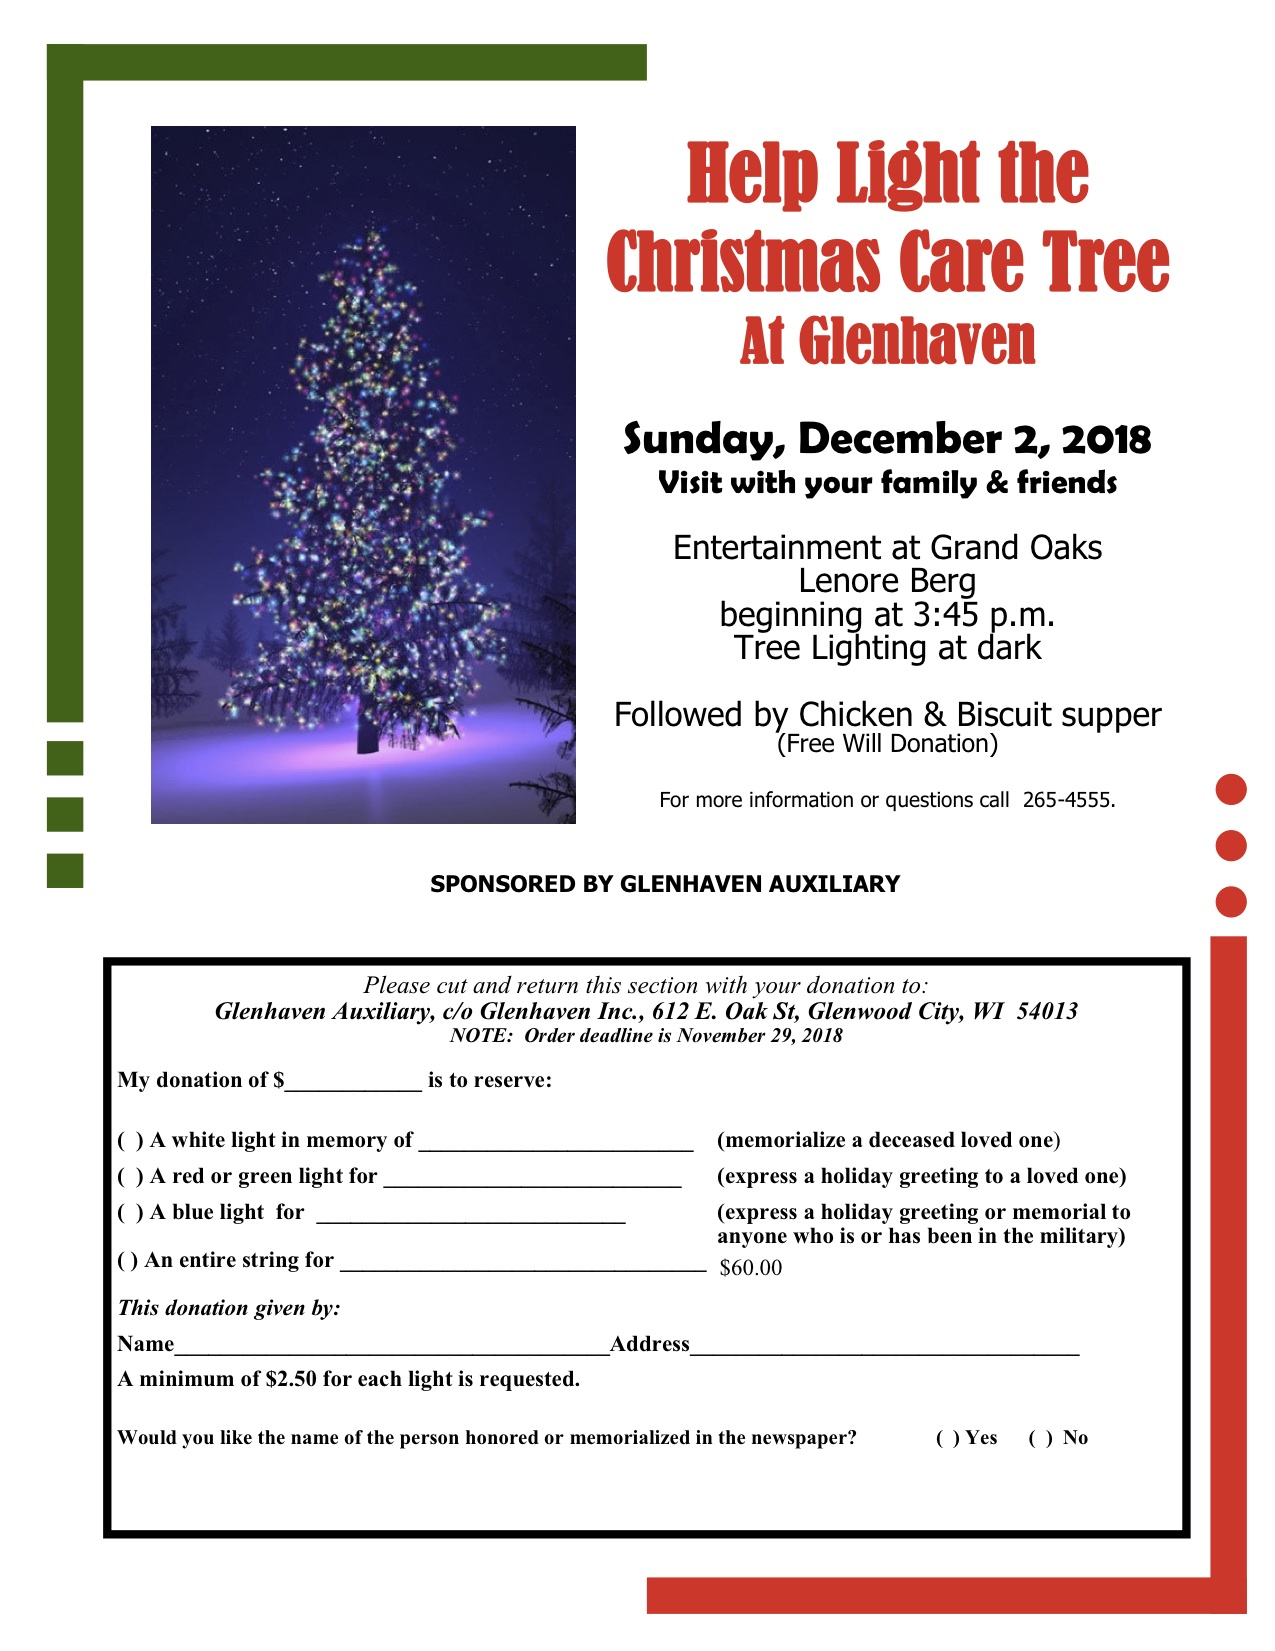 Lighting the Care Tree at Glenhaven image